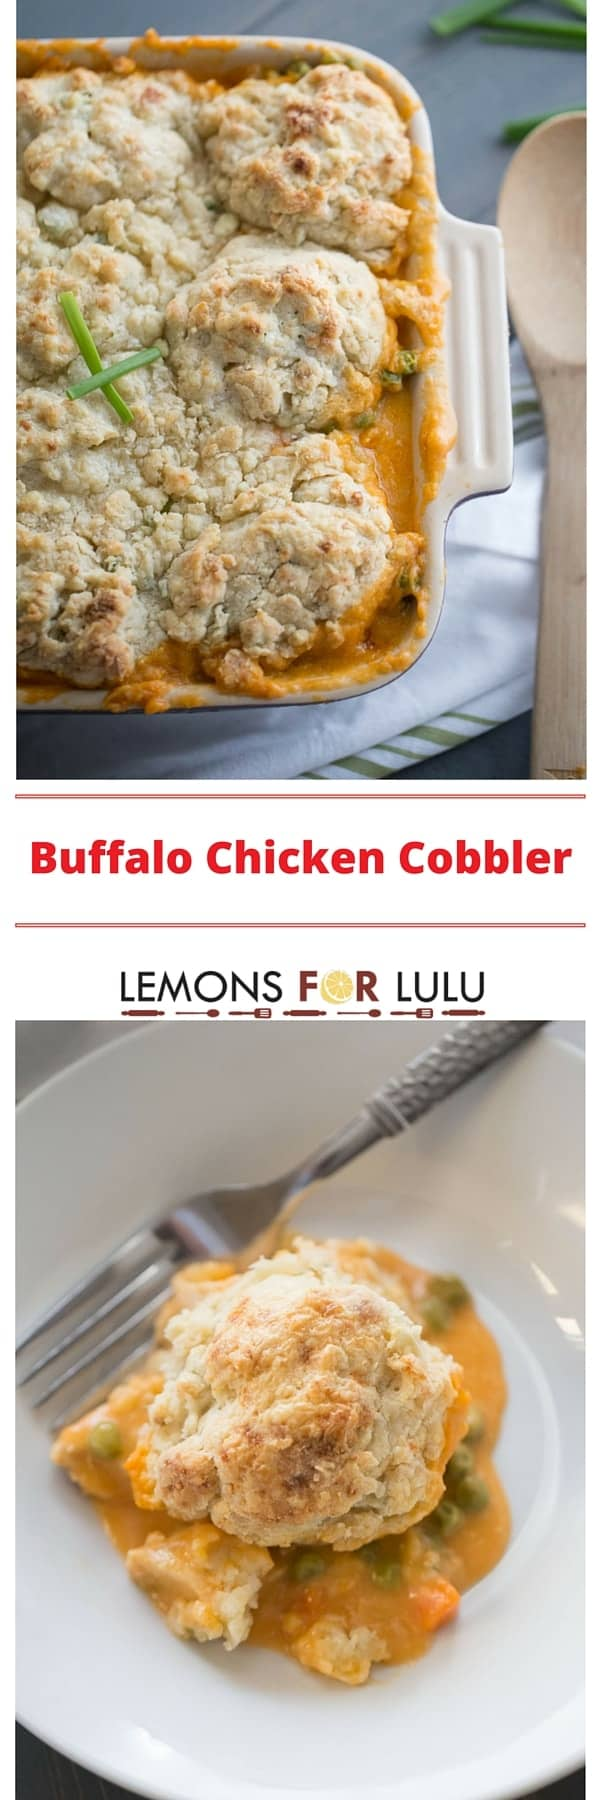 Chicken is cooked with vegetables in a creamy Buffalo sauce then topped with very simple drop biscuits made with blue cheese and chives. This Buffalo chicken cobbler is hearty and satisfying!